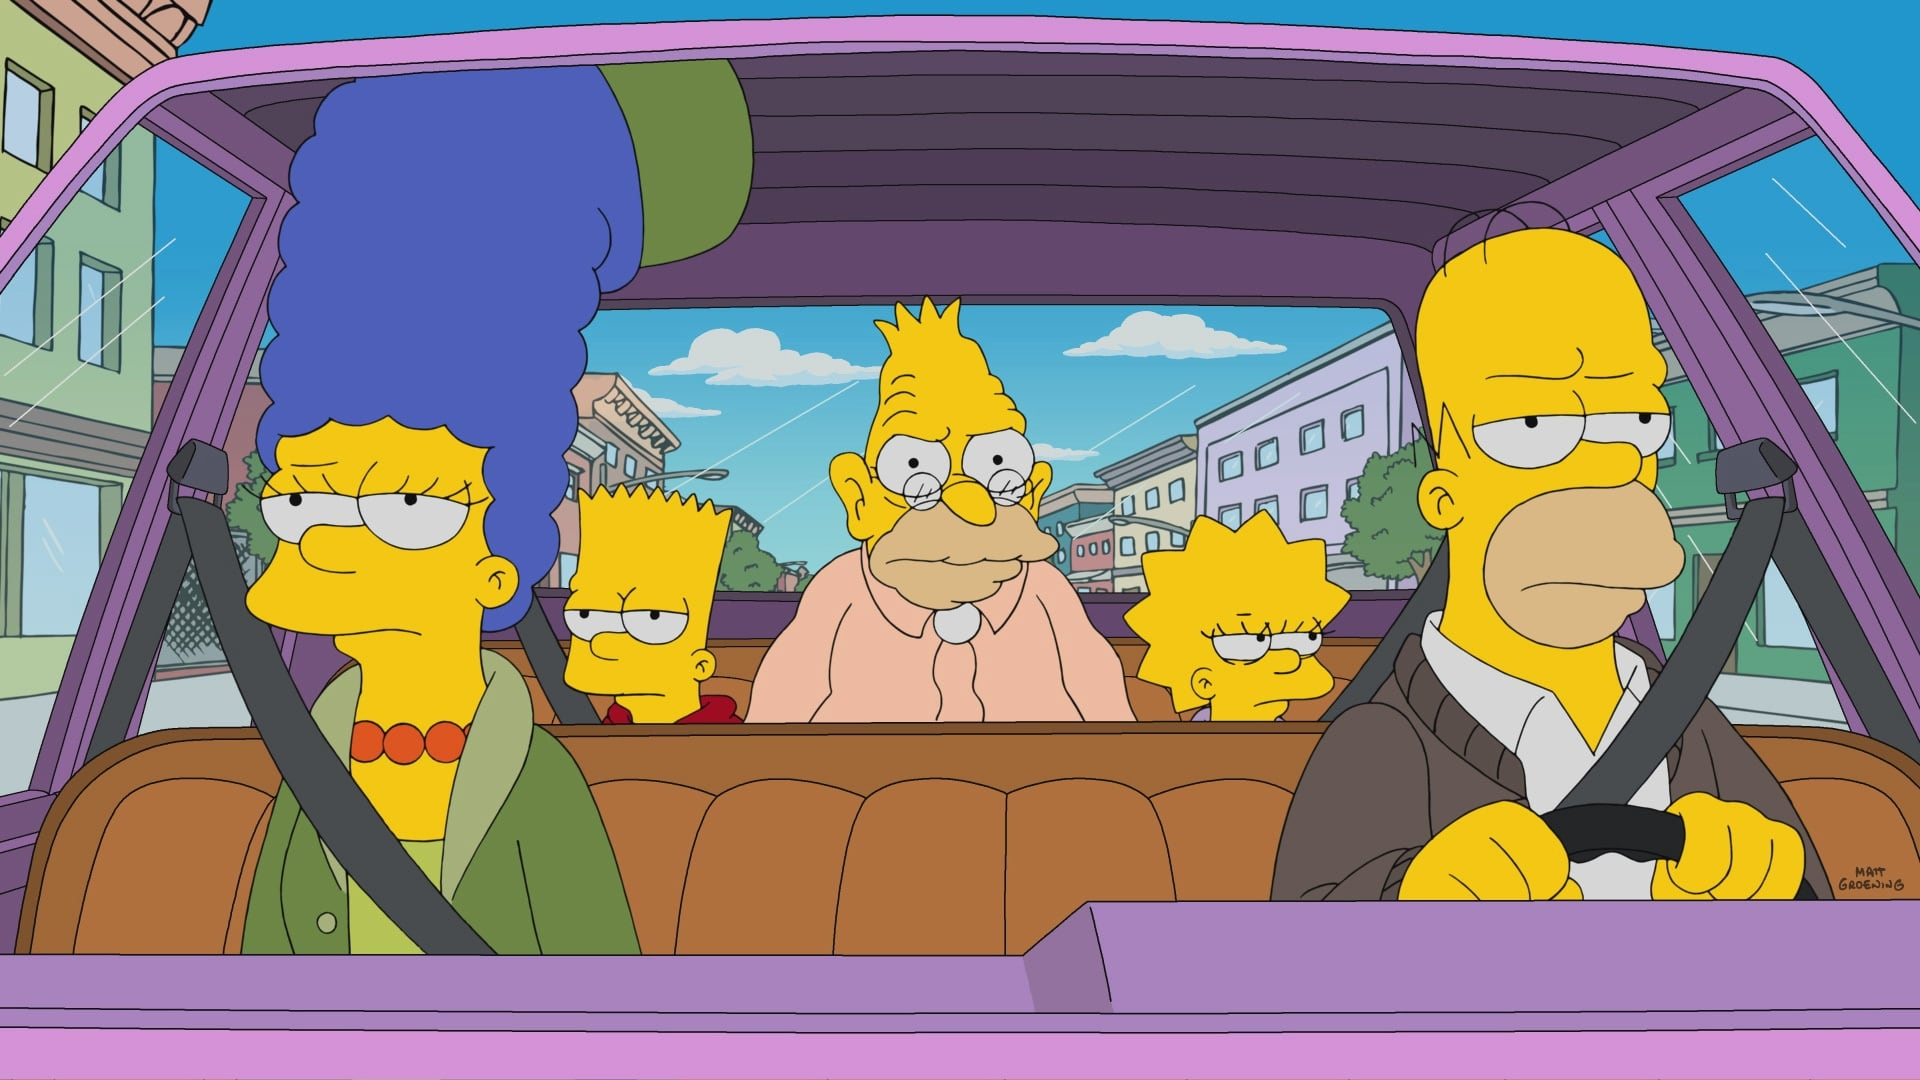 The Simpsons - Season 29 Episode 5 : Grampy Can Ya Hear Me